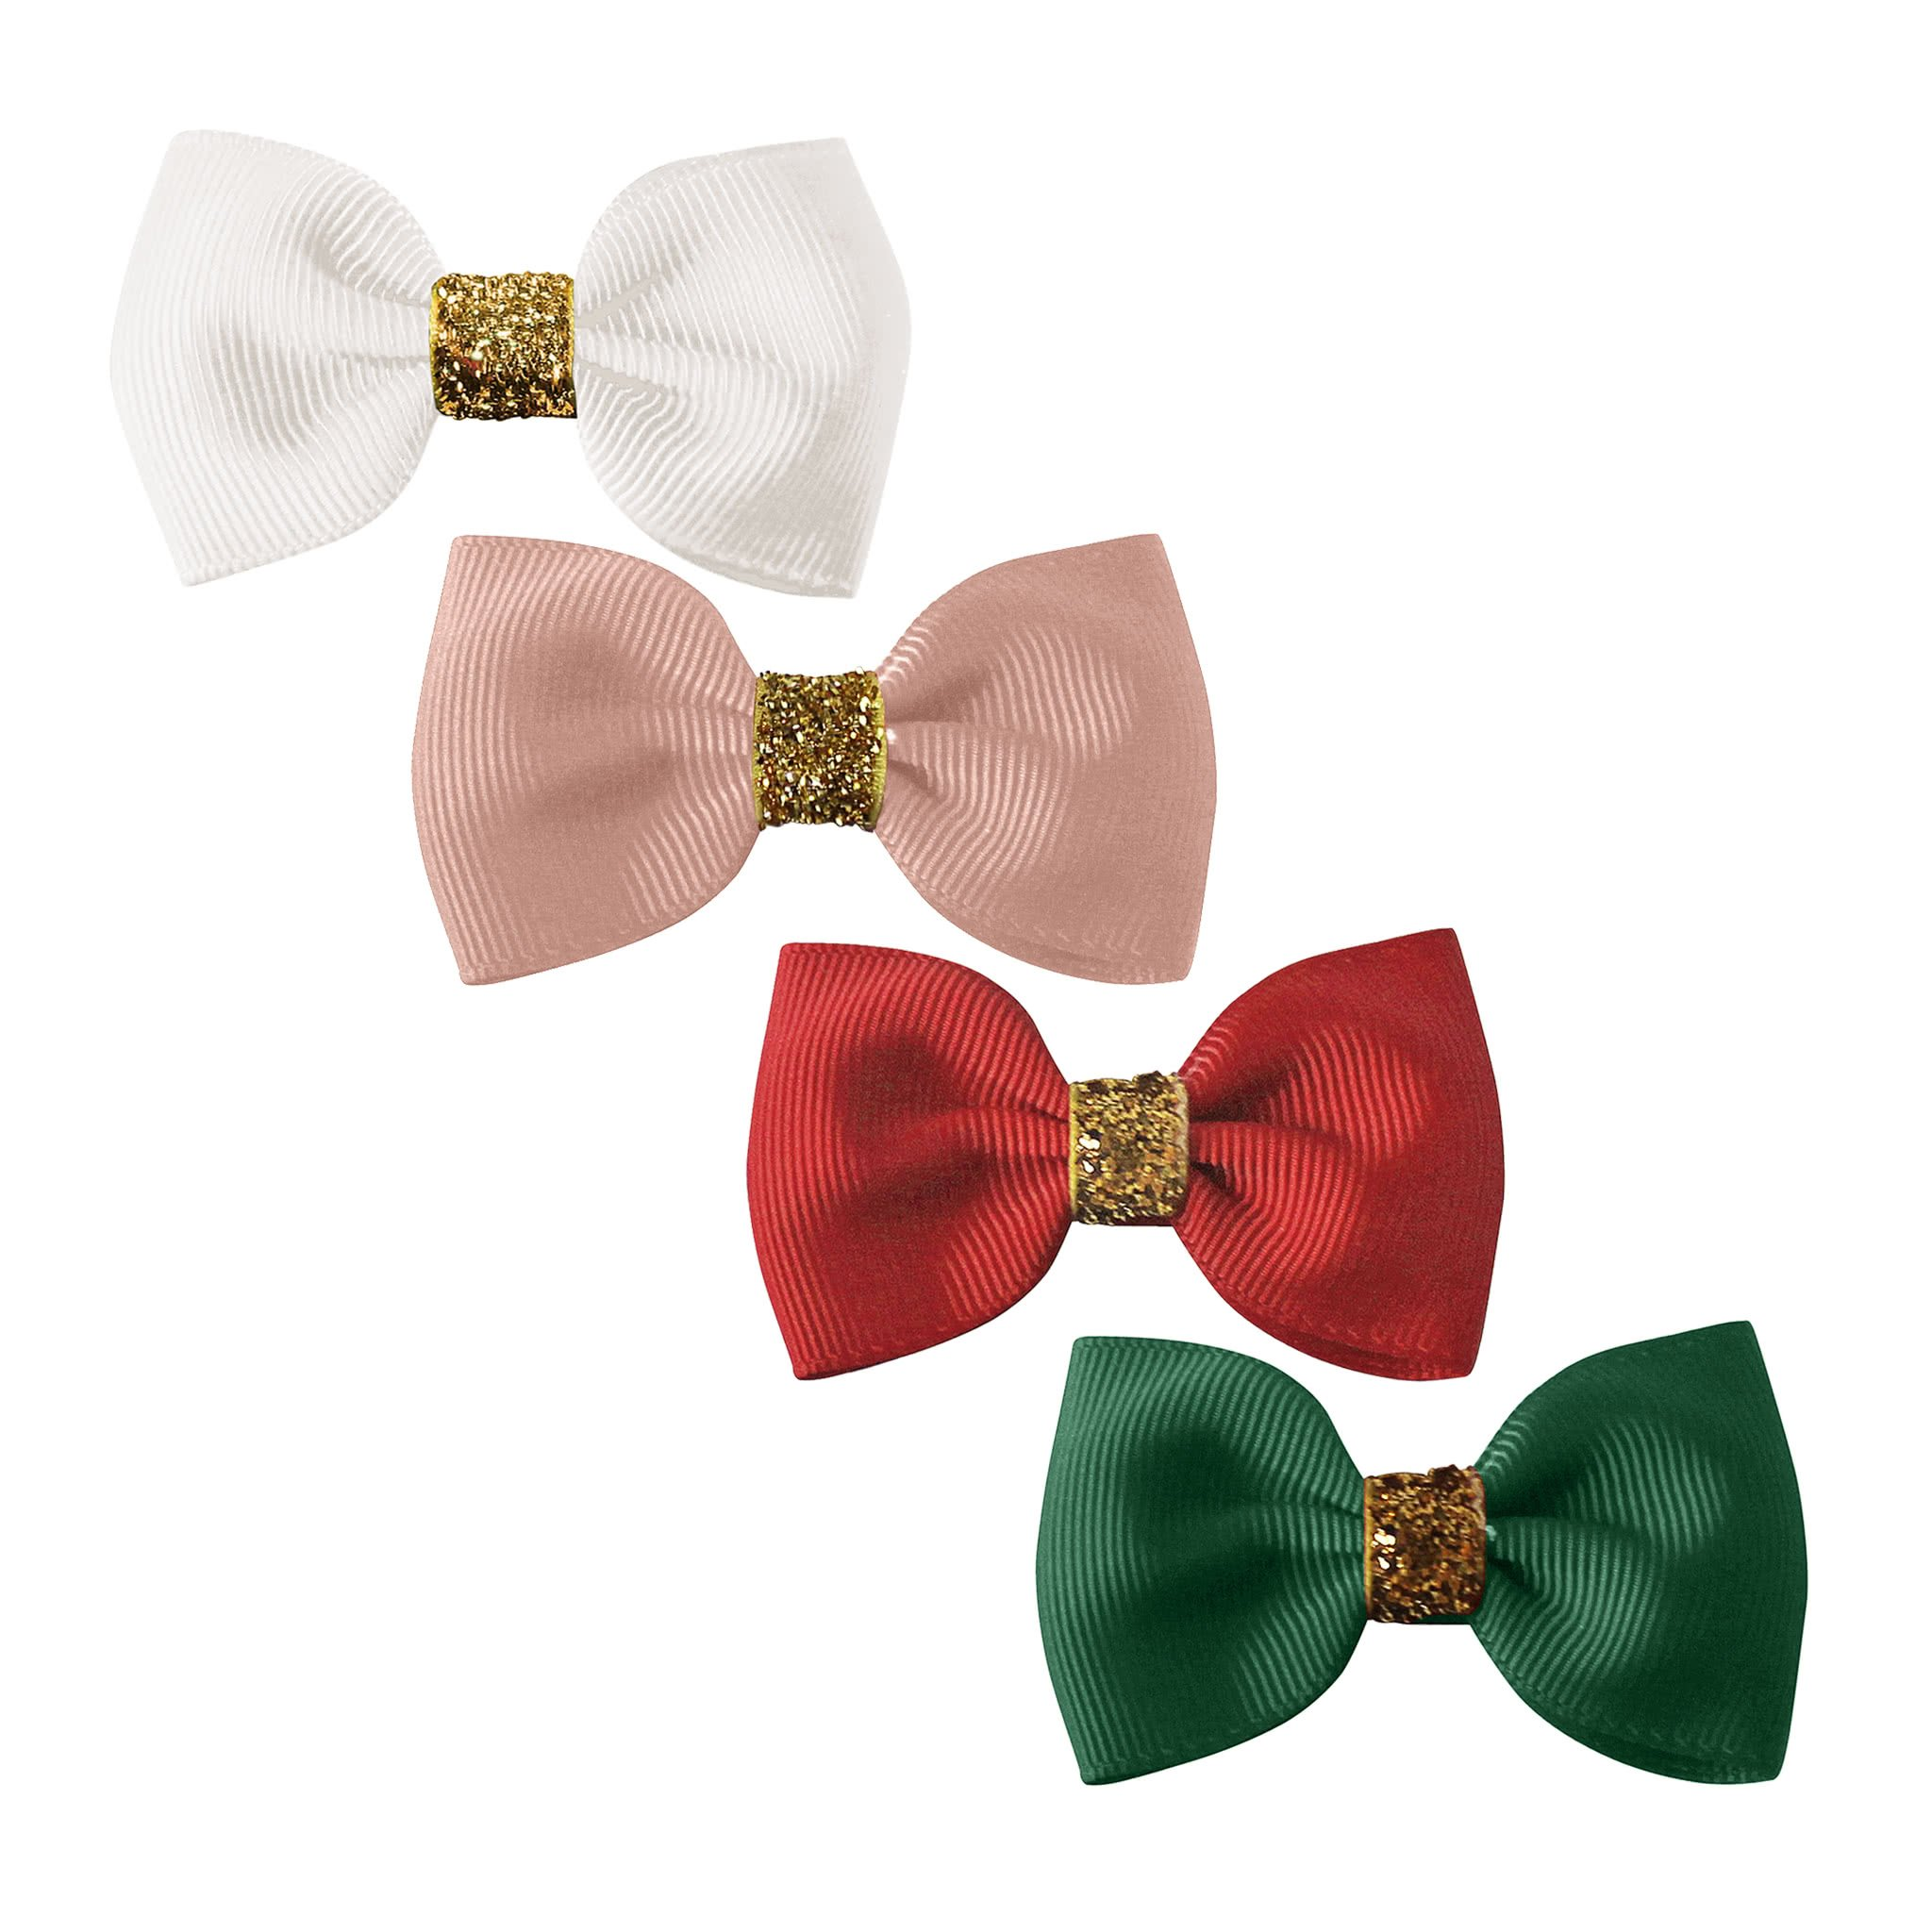 Image of Milledeux® Classic Christmas gift set - 4 small bowtie bows